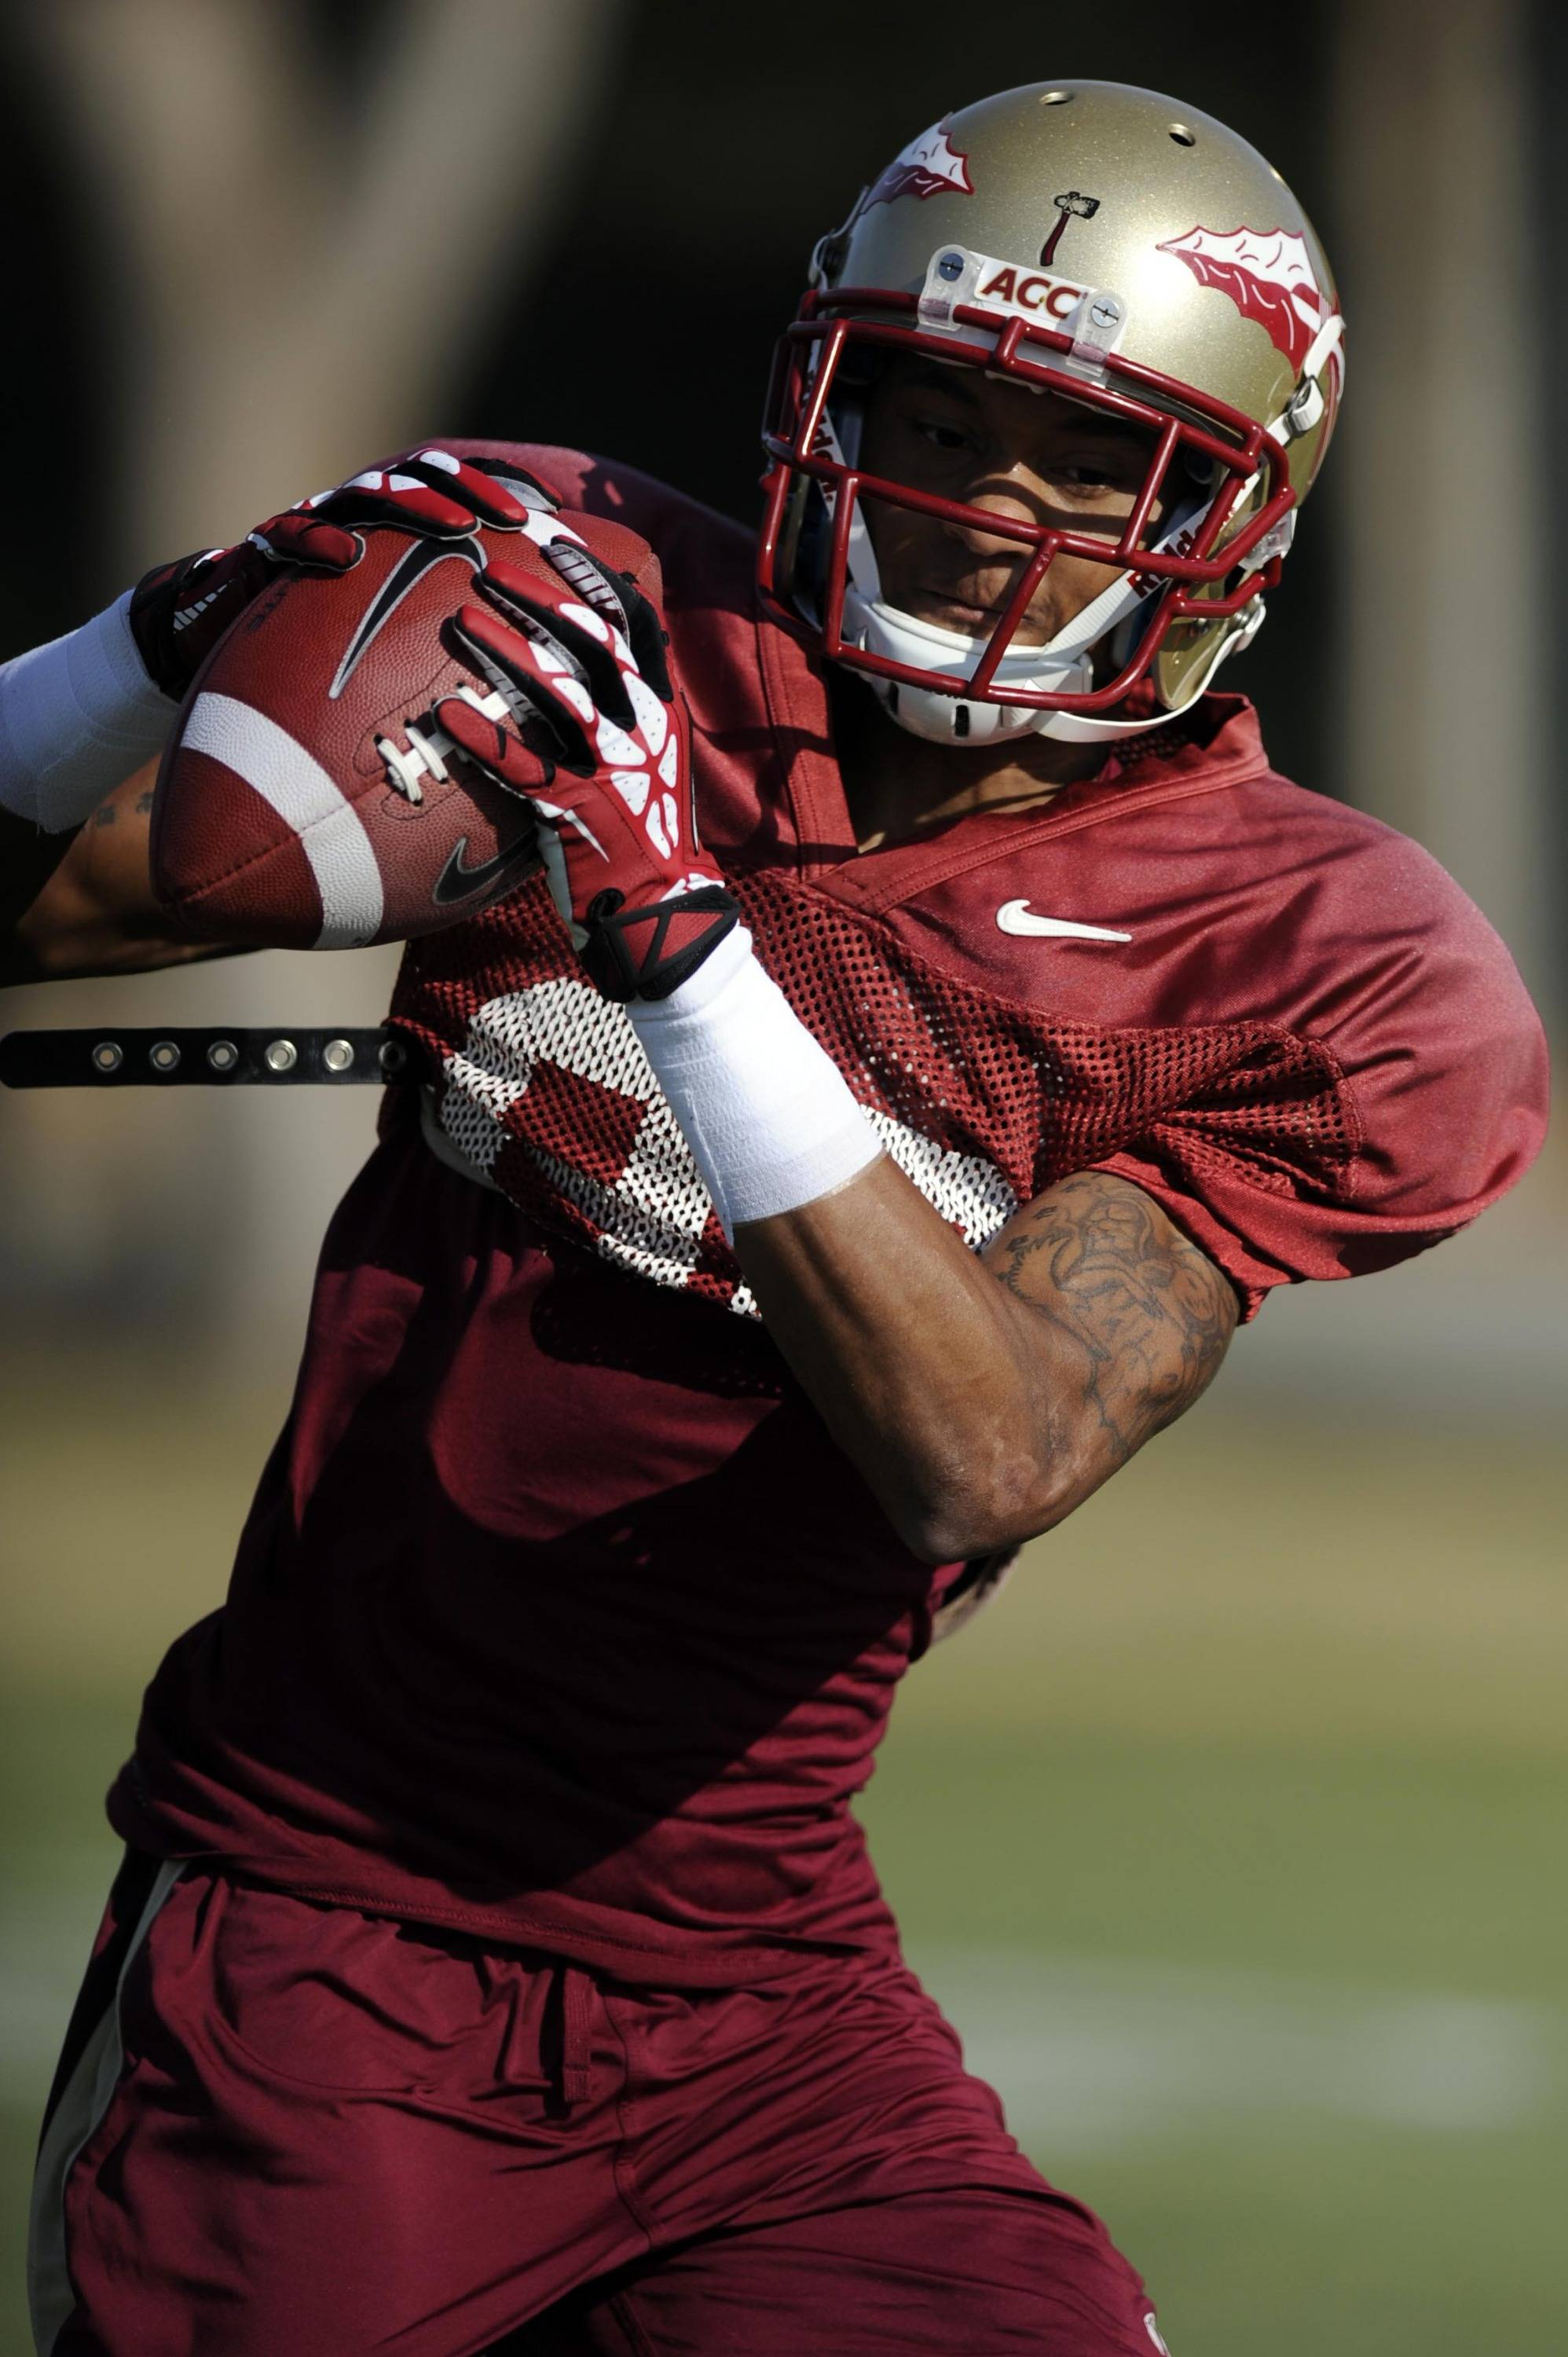 Jan 3, 2014; Orange, CA, USA; Florida State Seminoles wide receiver Rashad Greene (80) during practice for the BCS National Championship football game against the Auburn Tigers at Orange Coast College. Mandatory Credit: Kelvin Kuo-USA TODAY Sports